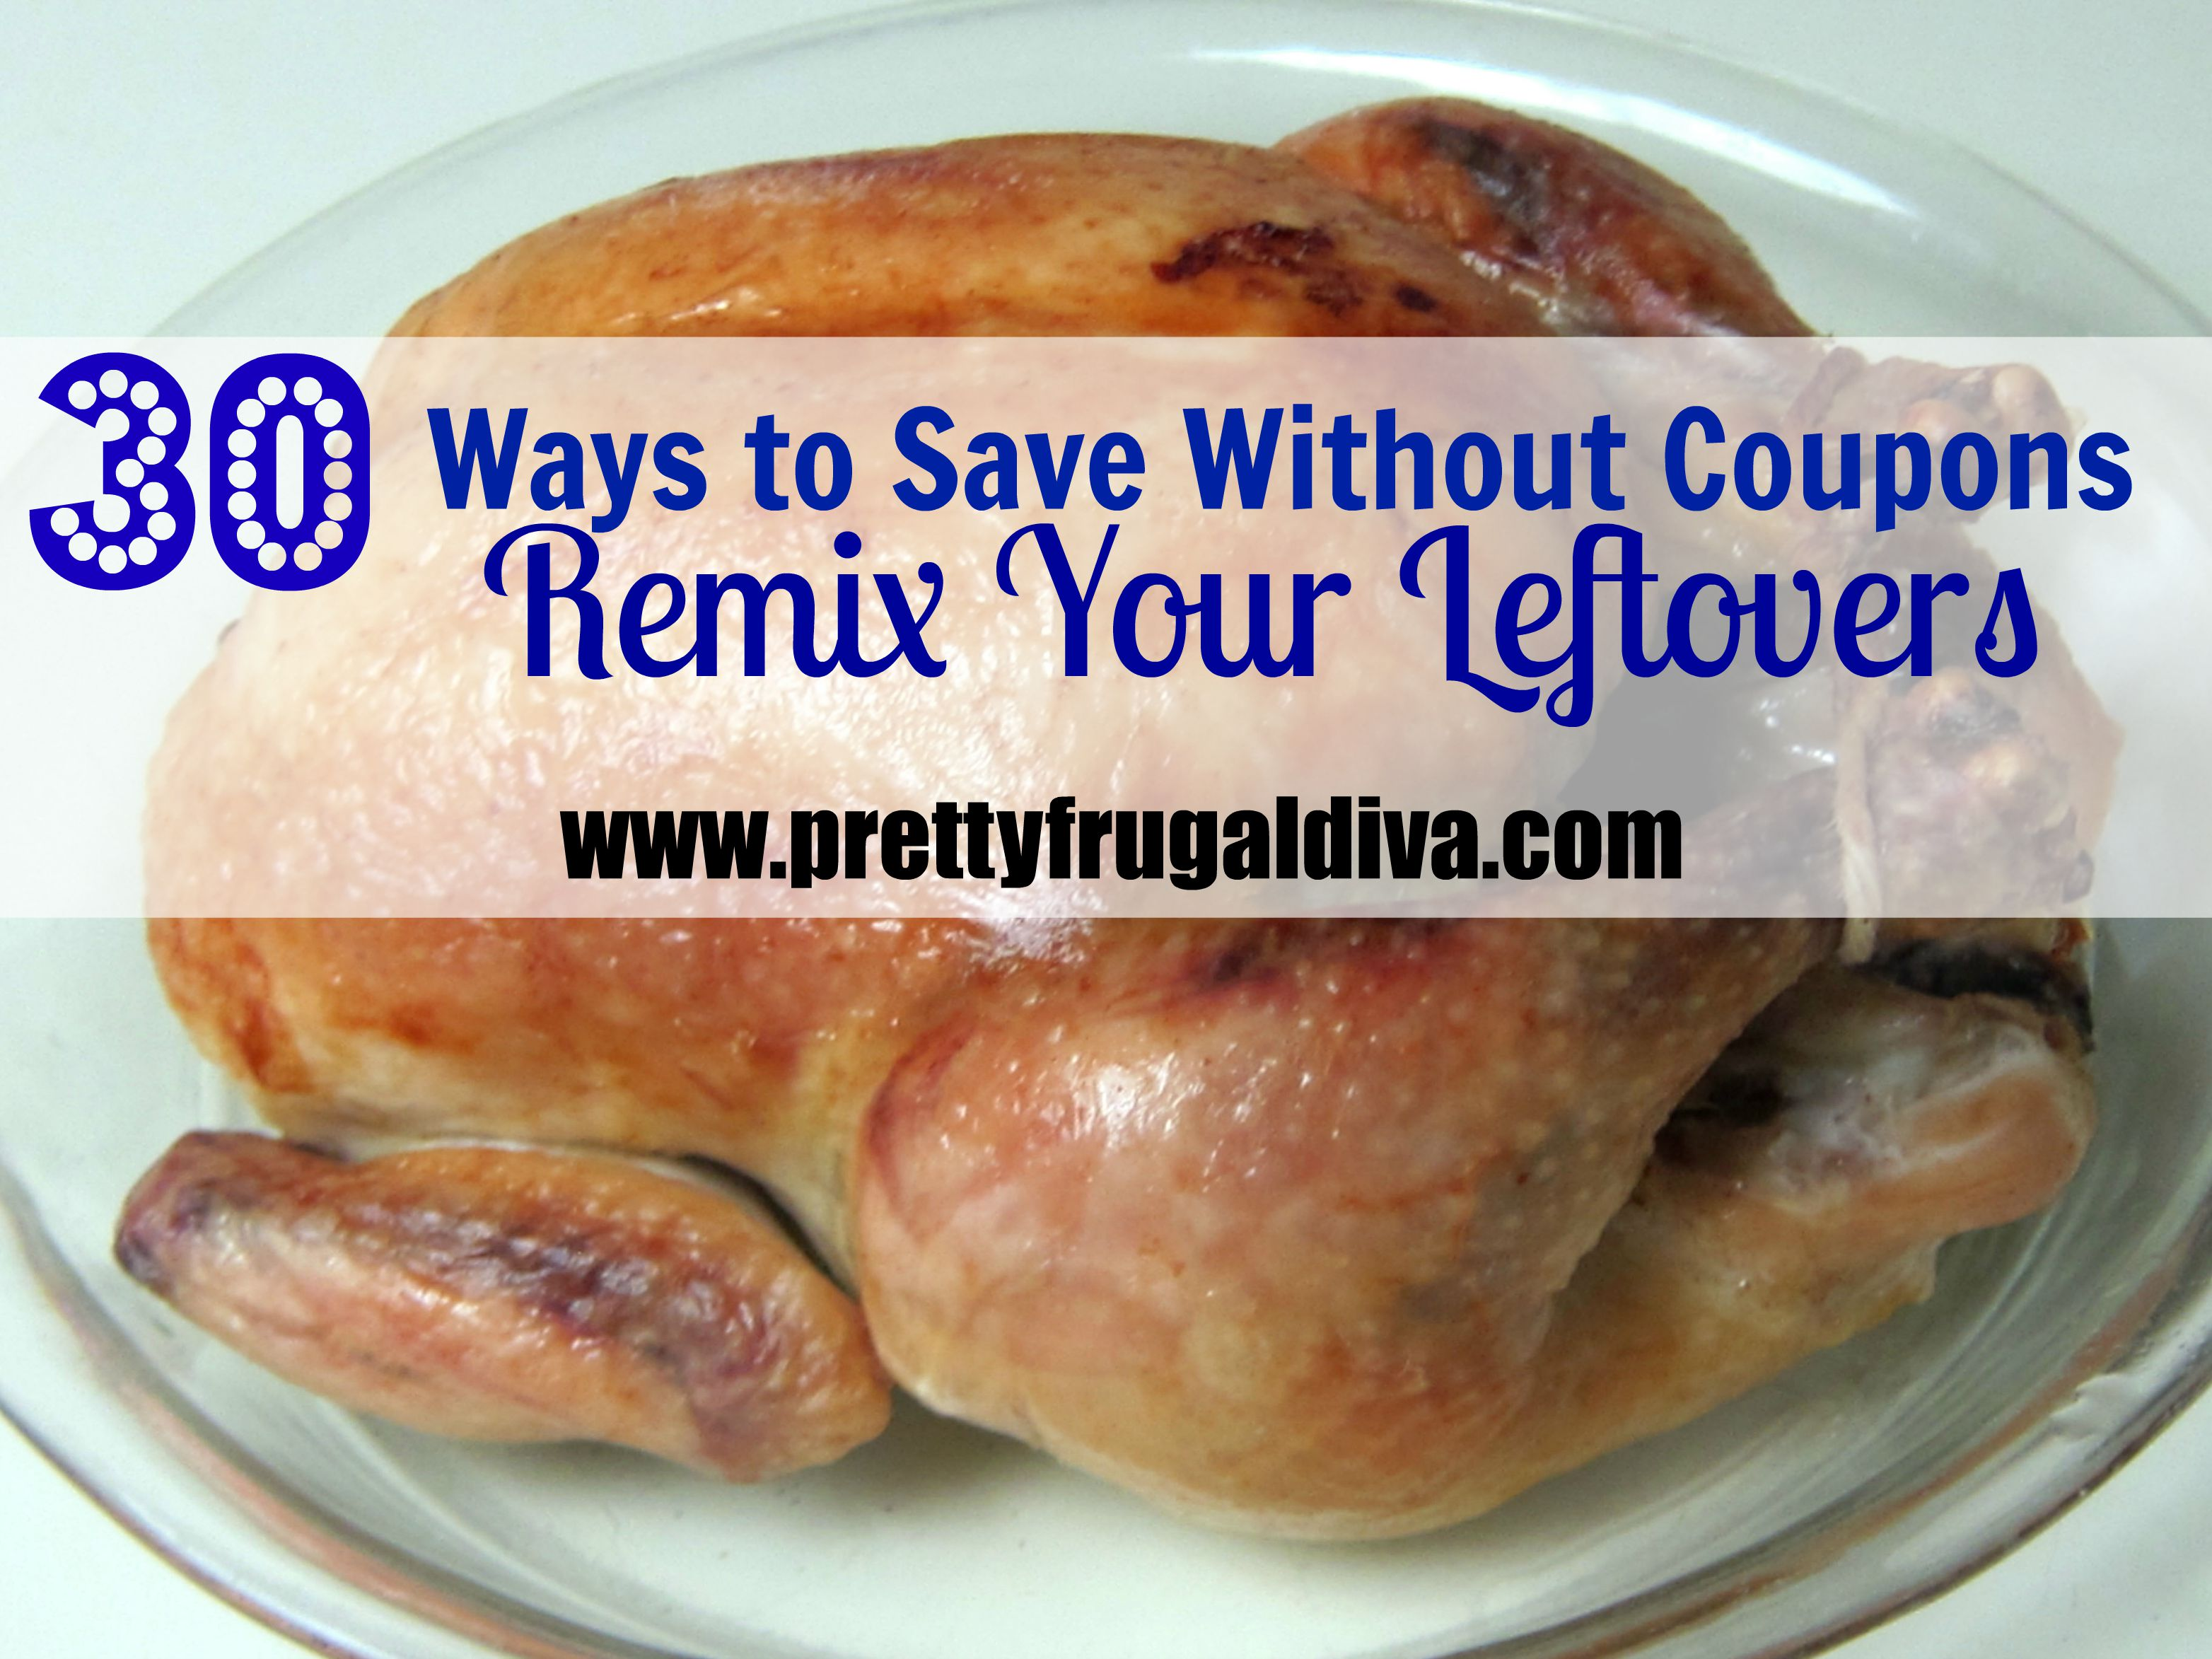 30 Ways to Save Without Coupons: #10 Use Leftovers and Remix Them